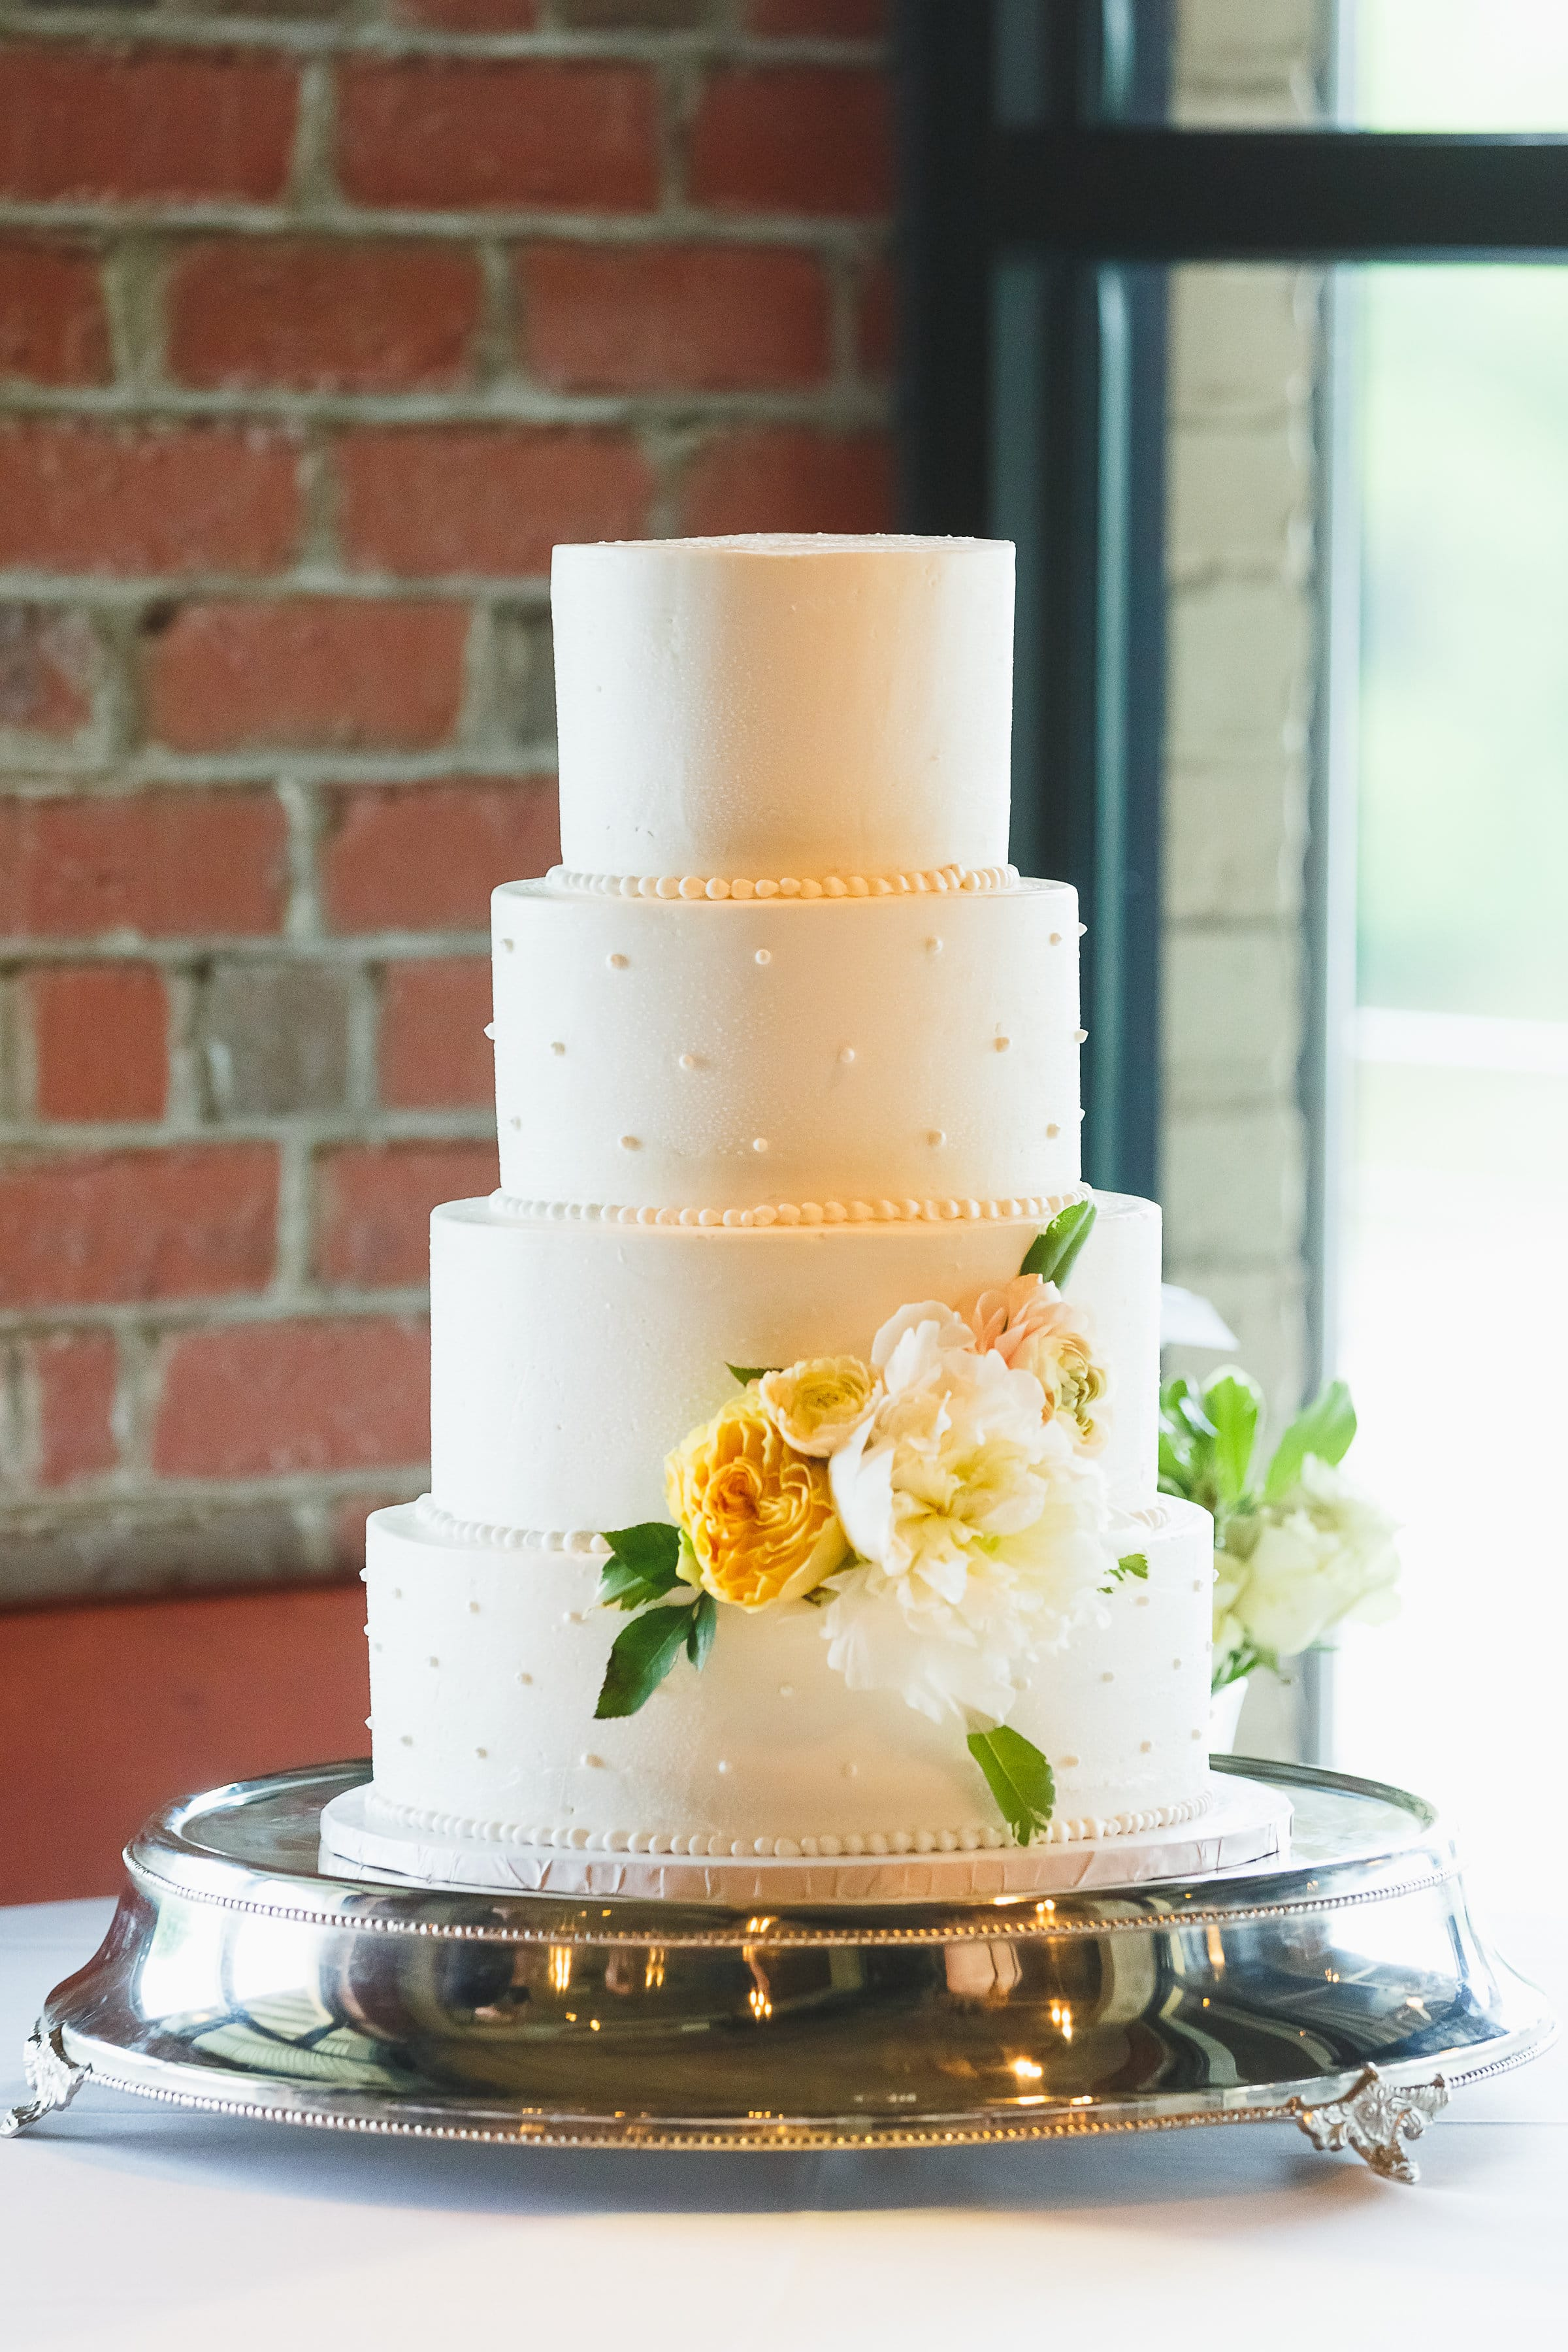 White Wedding Cake with Pearls at Wedding